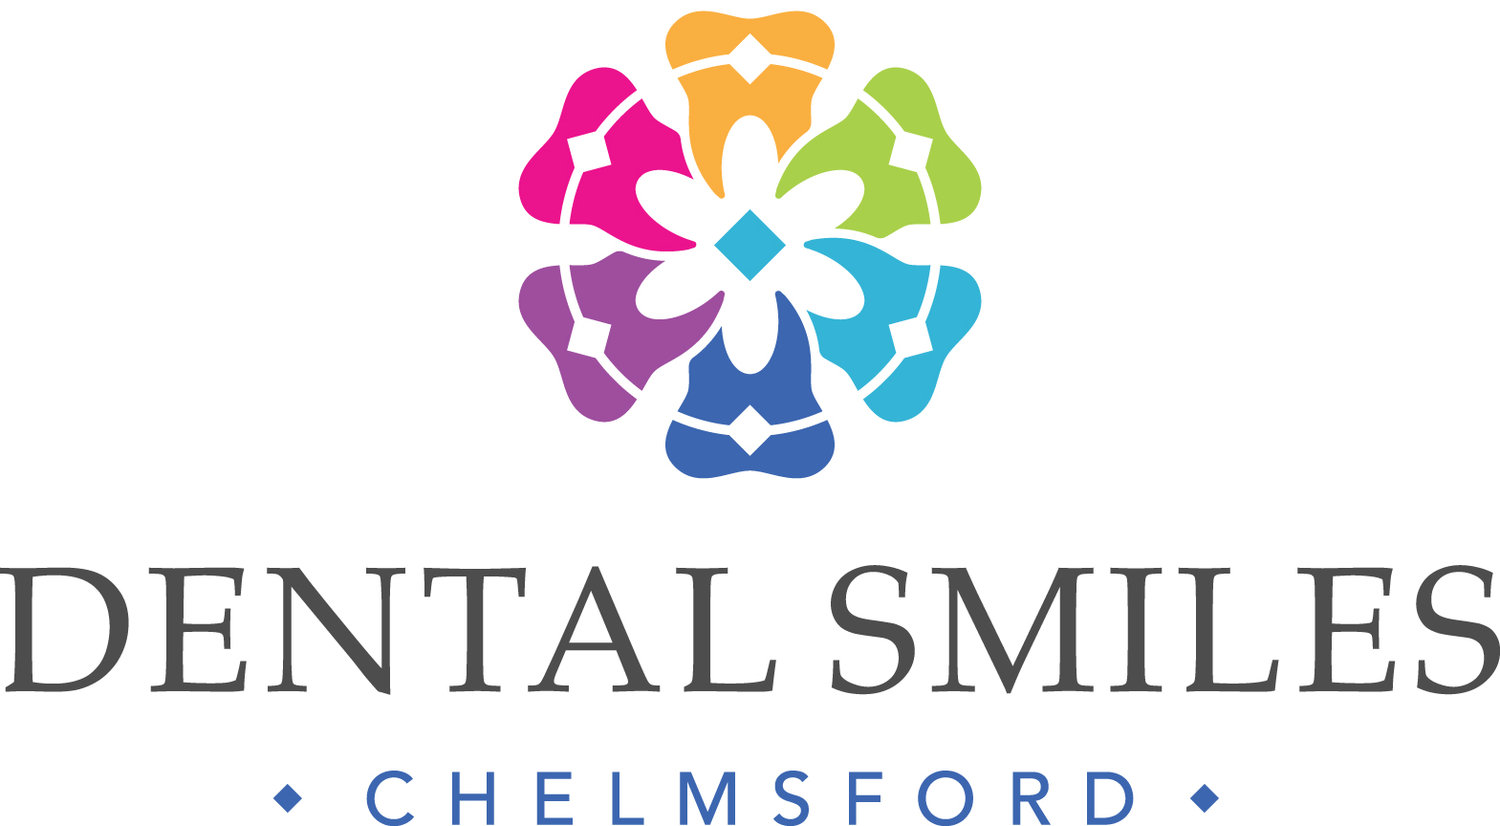 Dental Smiles Chelmsford